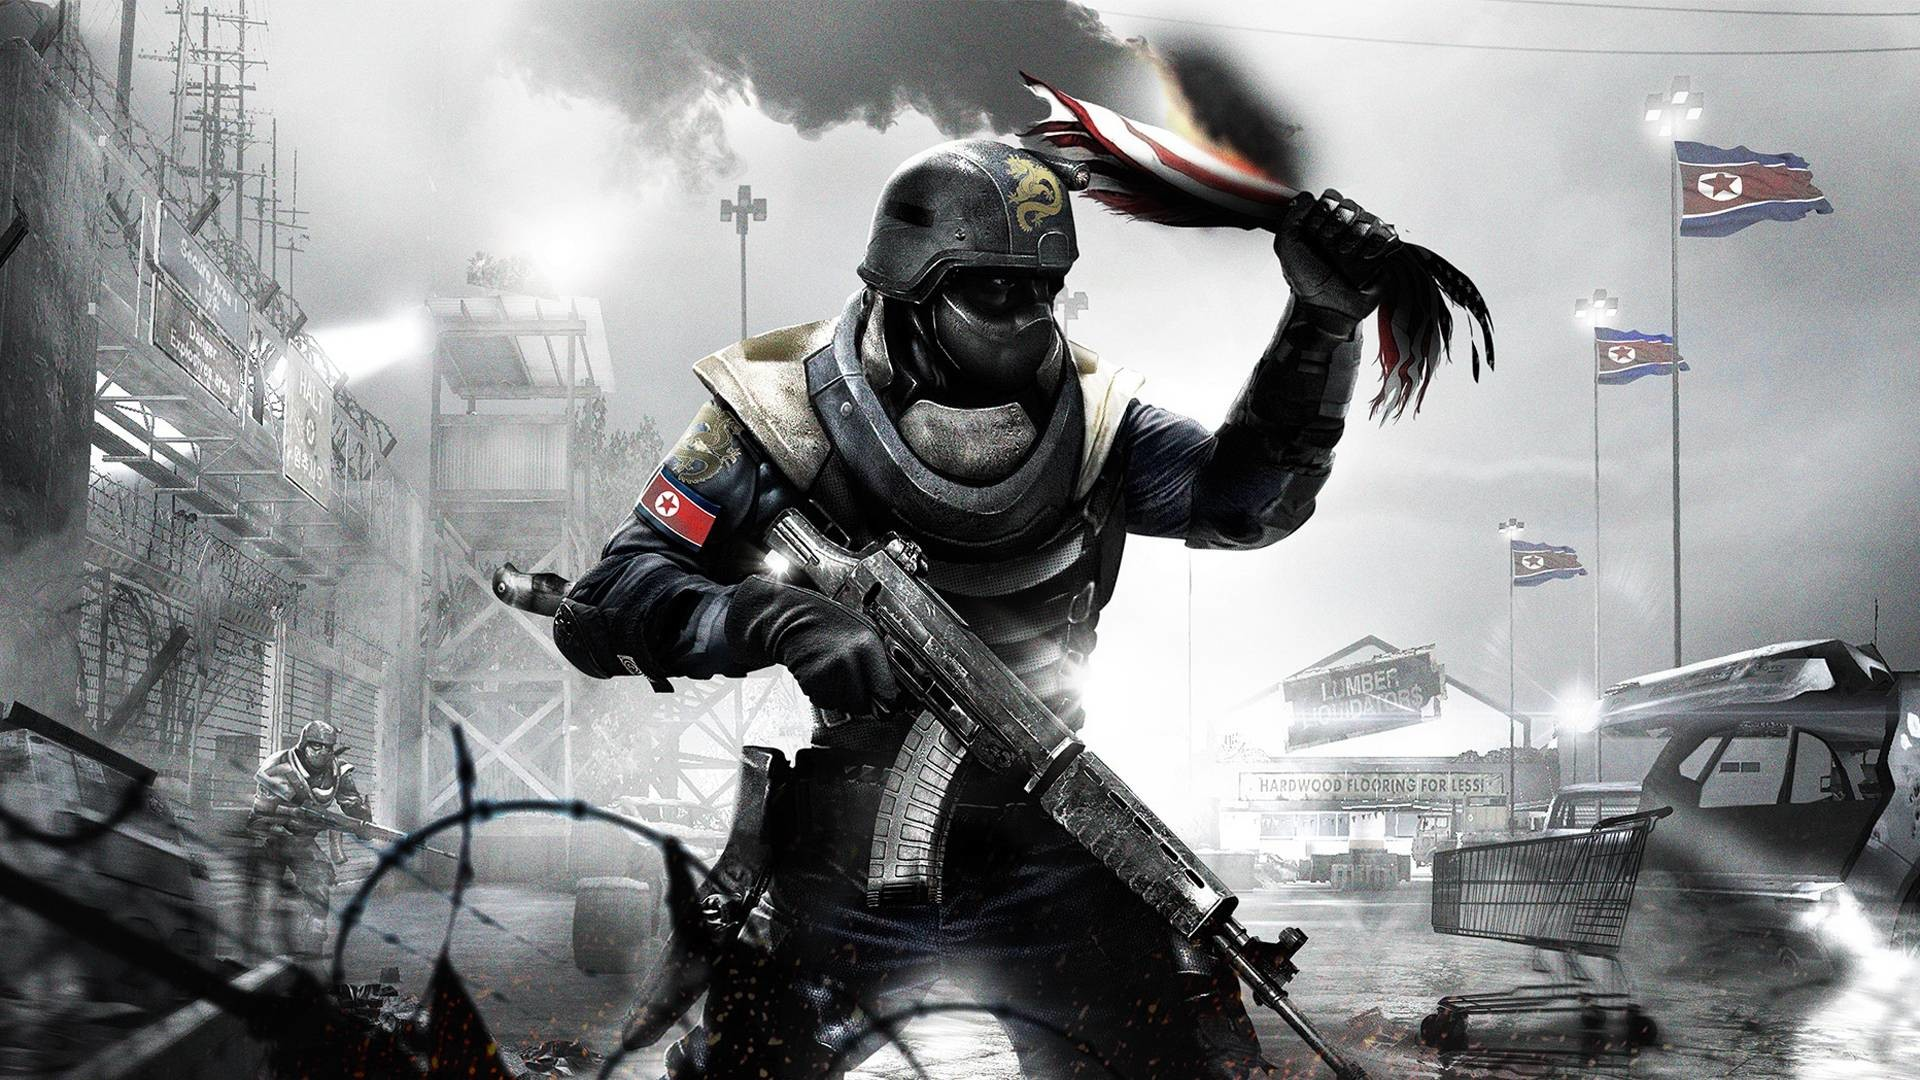 Homefront Wallpapers in full 1080P HD Â« GamingBolt.com: Video Game .